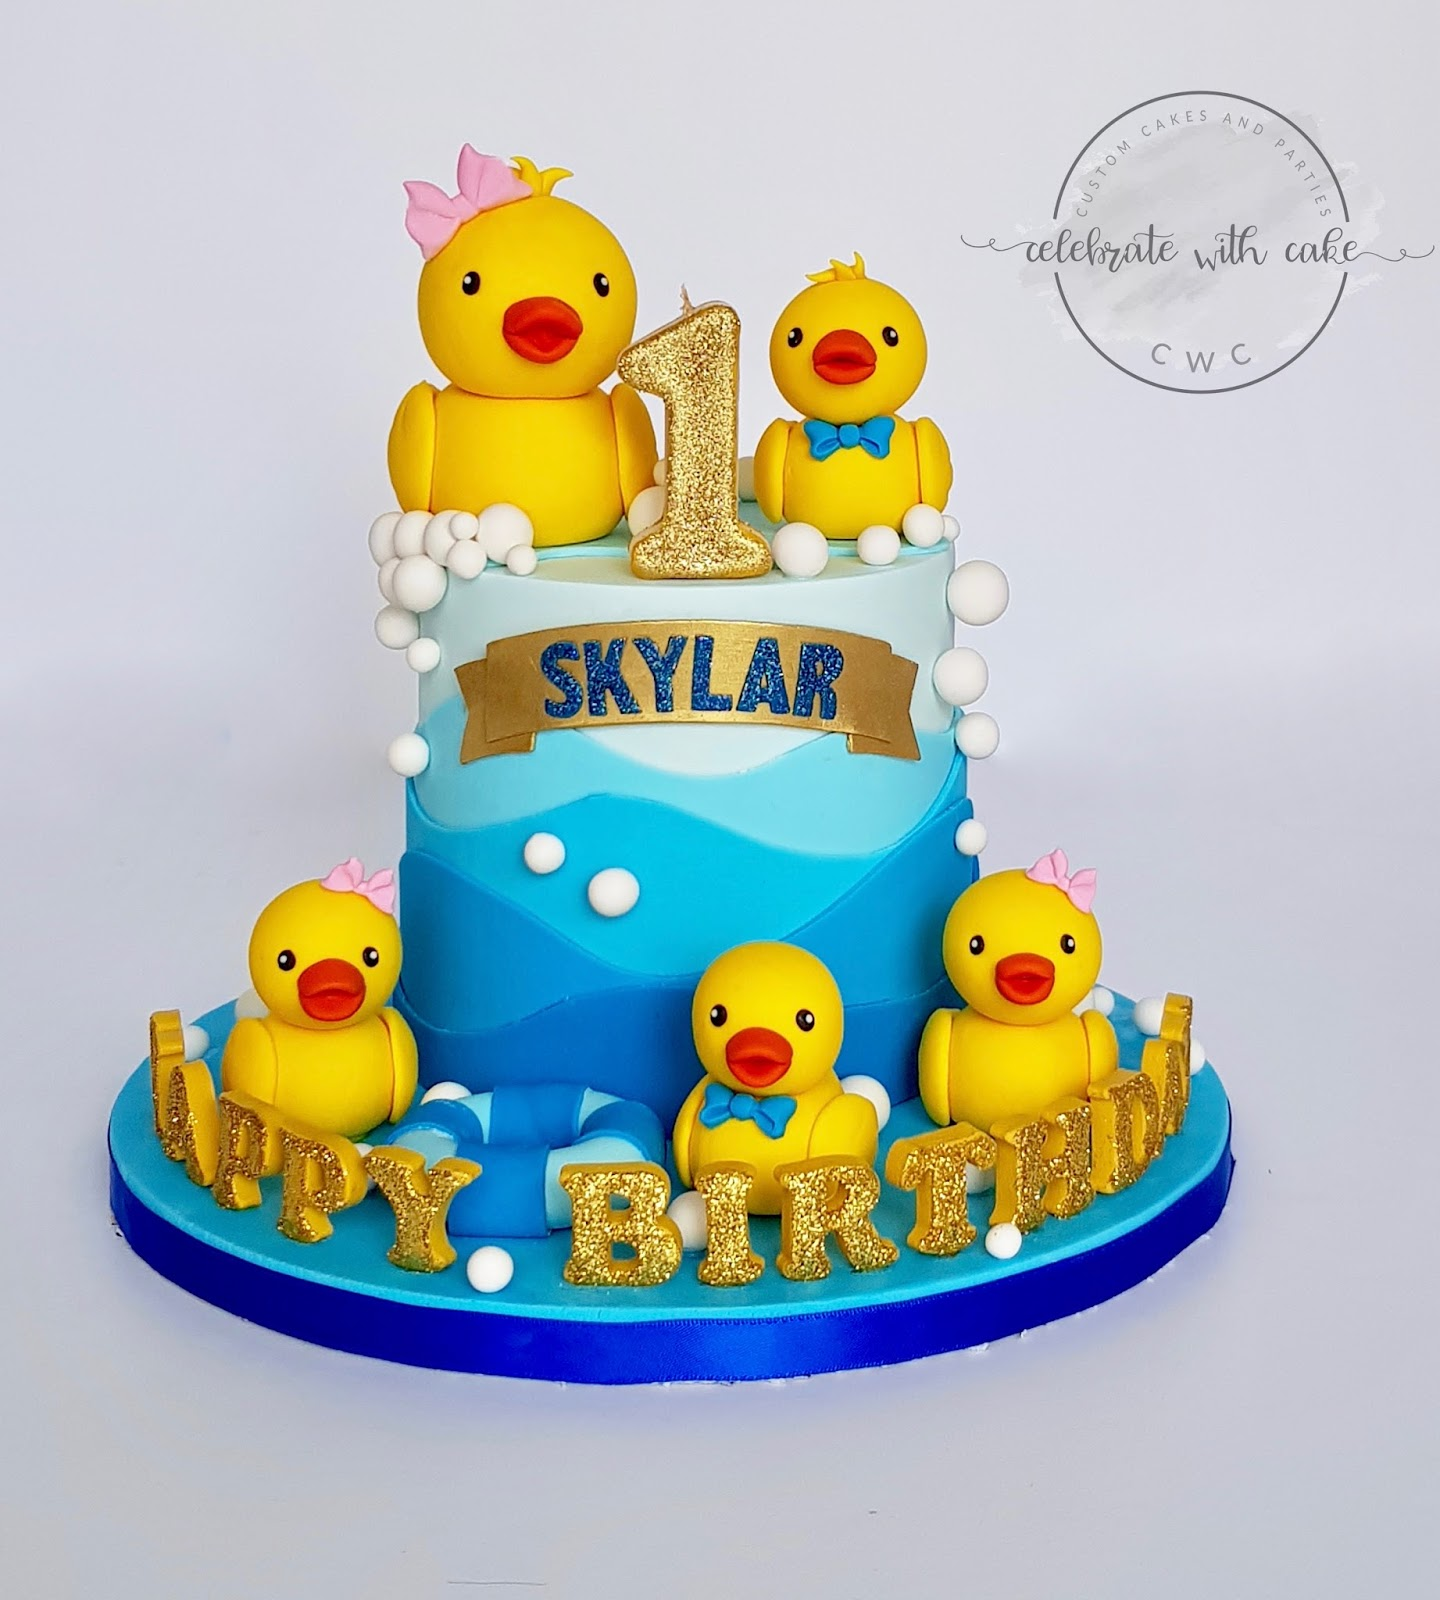 Groovy Celebrate With Cake Rubber Ducky 1St Birthday Cake Funny Birthday Cards Online Alyptdamsfinfo